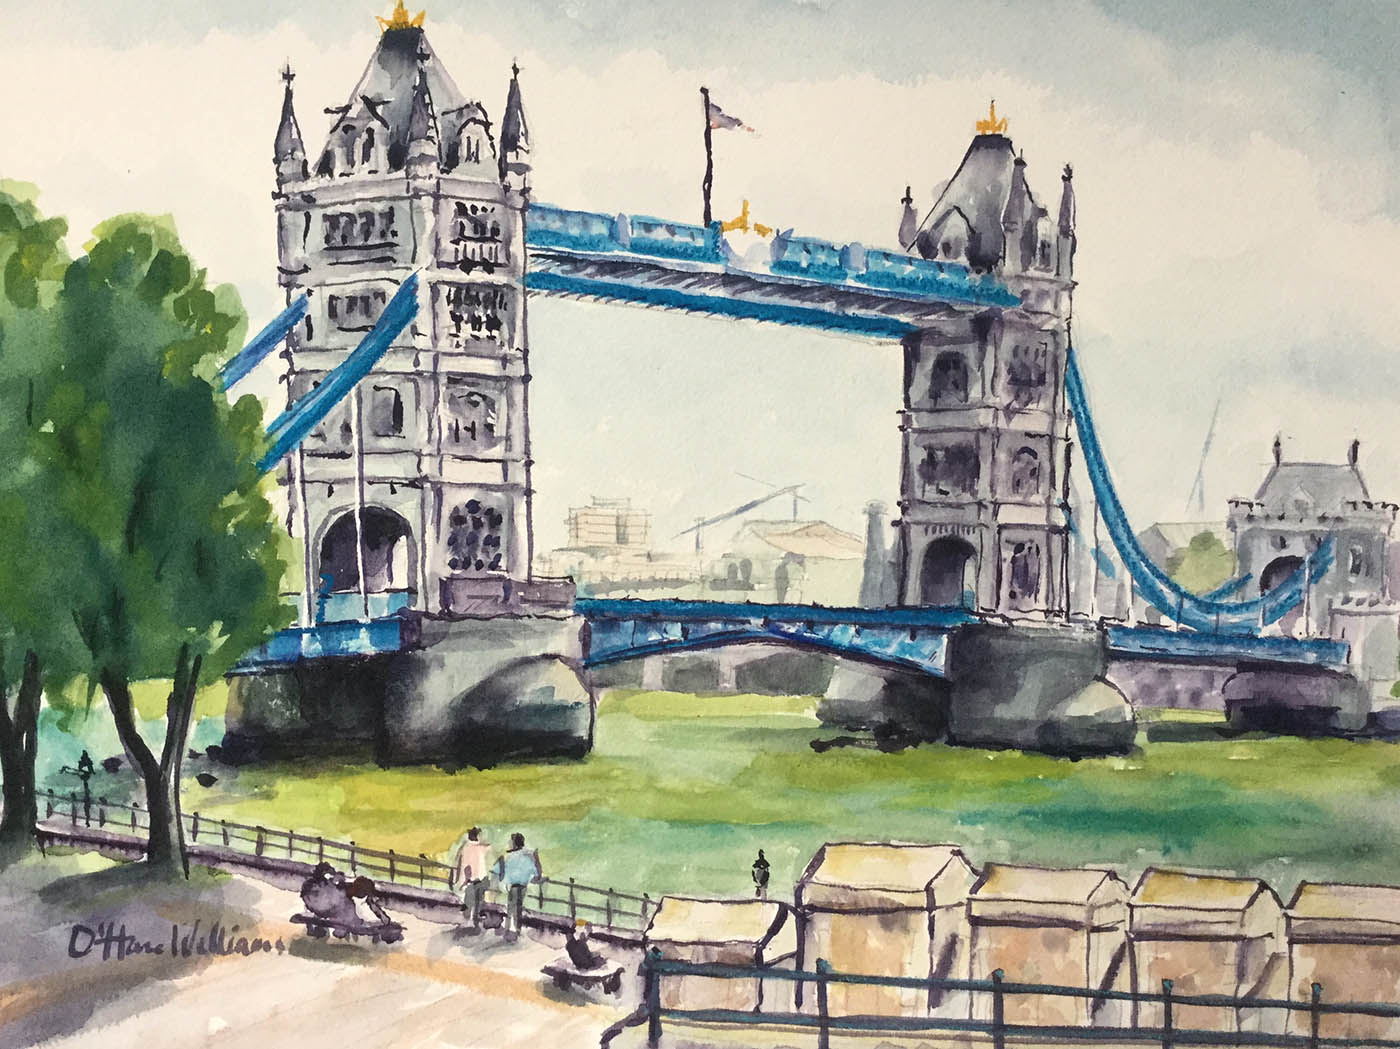 OHareWilliams_London_Bridge, 2018